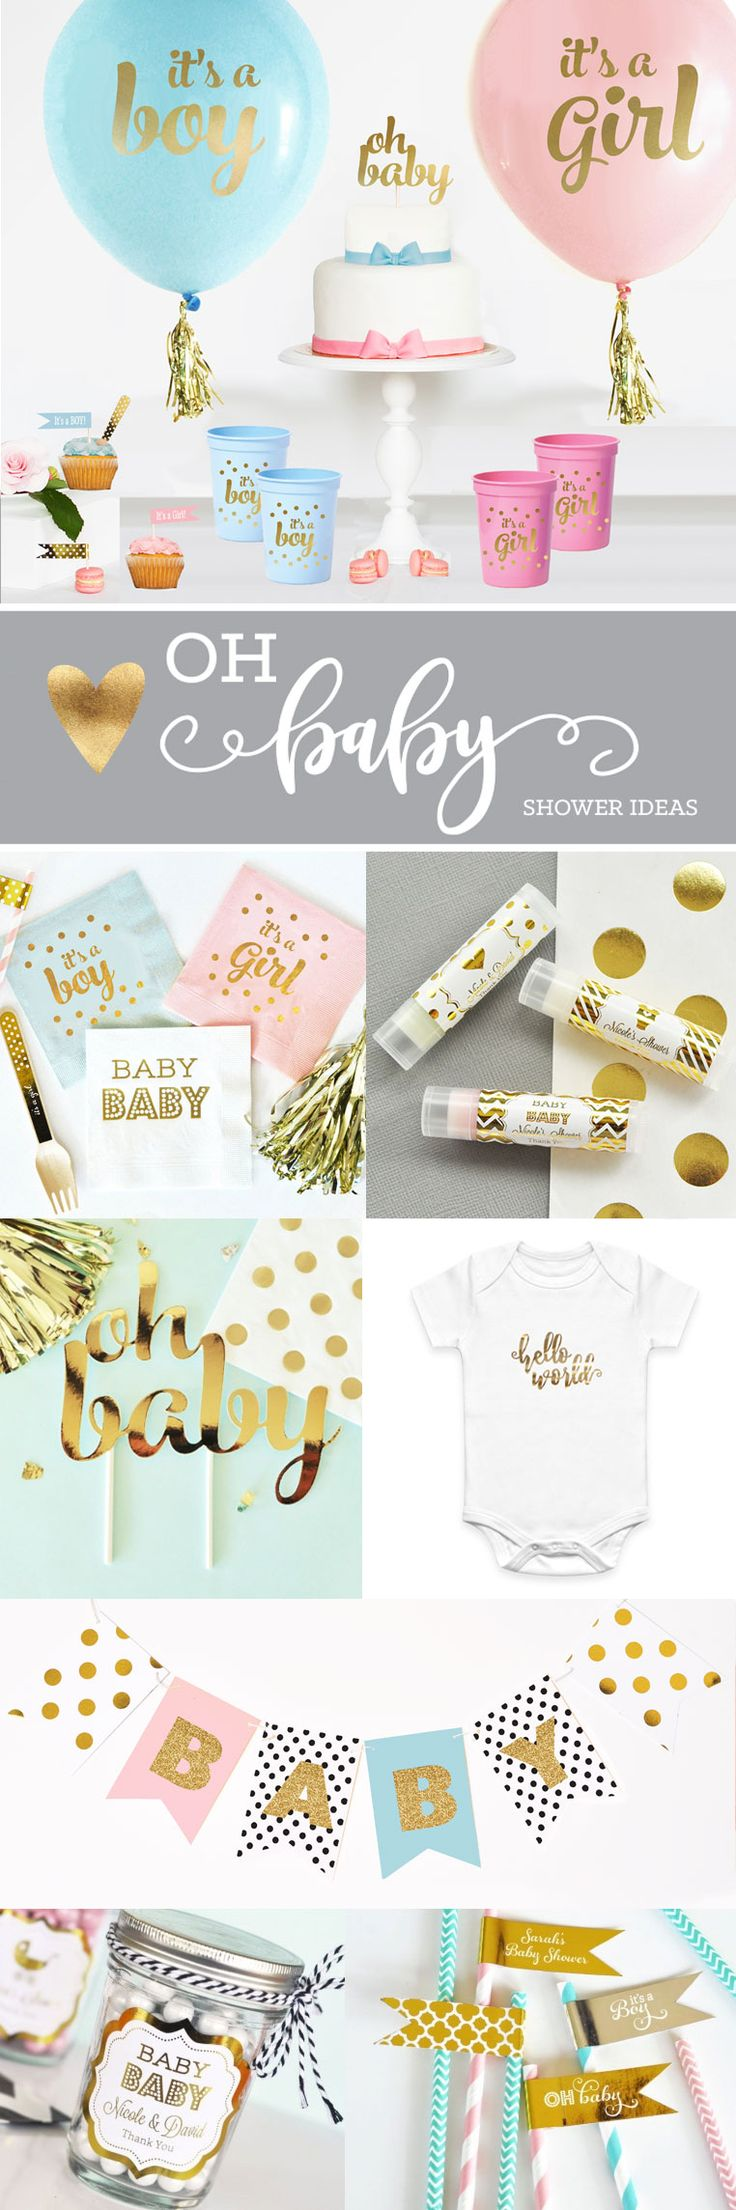 Baby shower ideas gold baby shower theme decorations baby shower banner baby shower